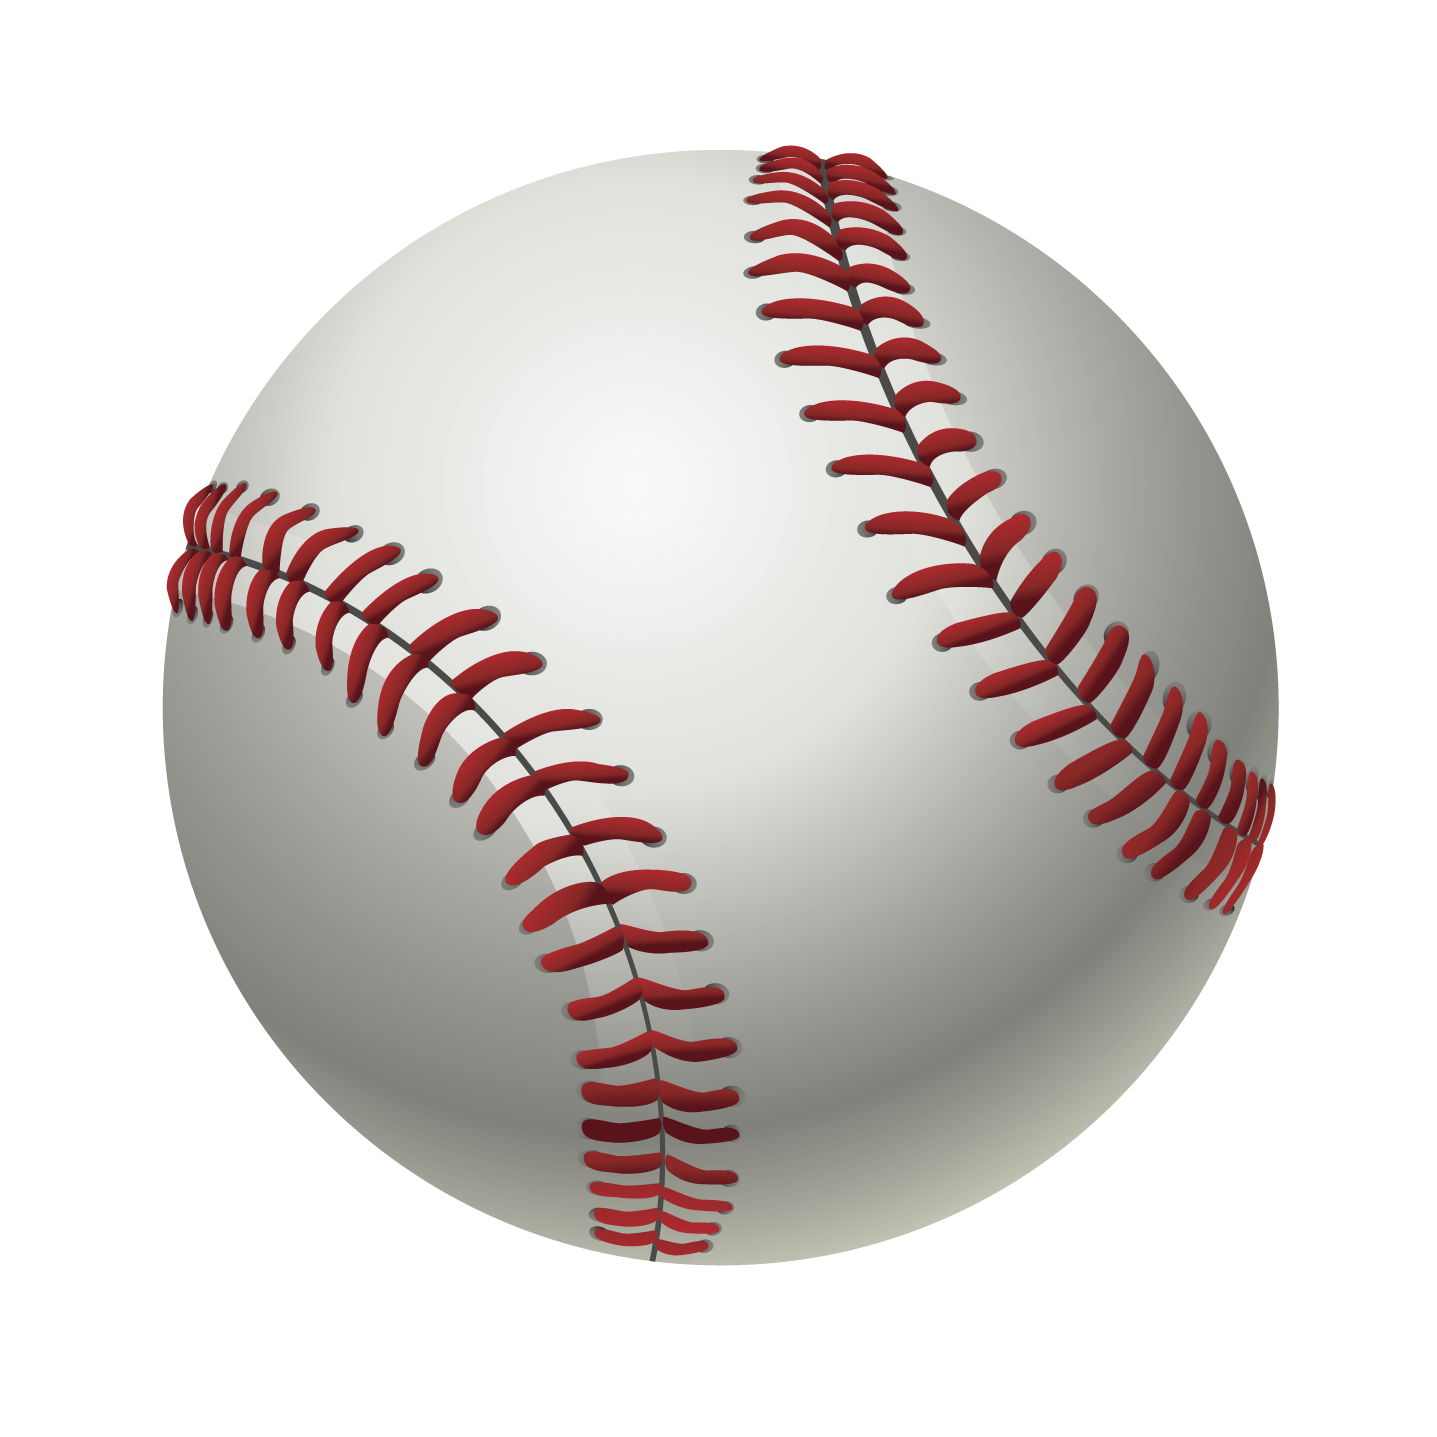 Free Download Of Baseball Icon Clipart